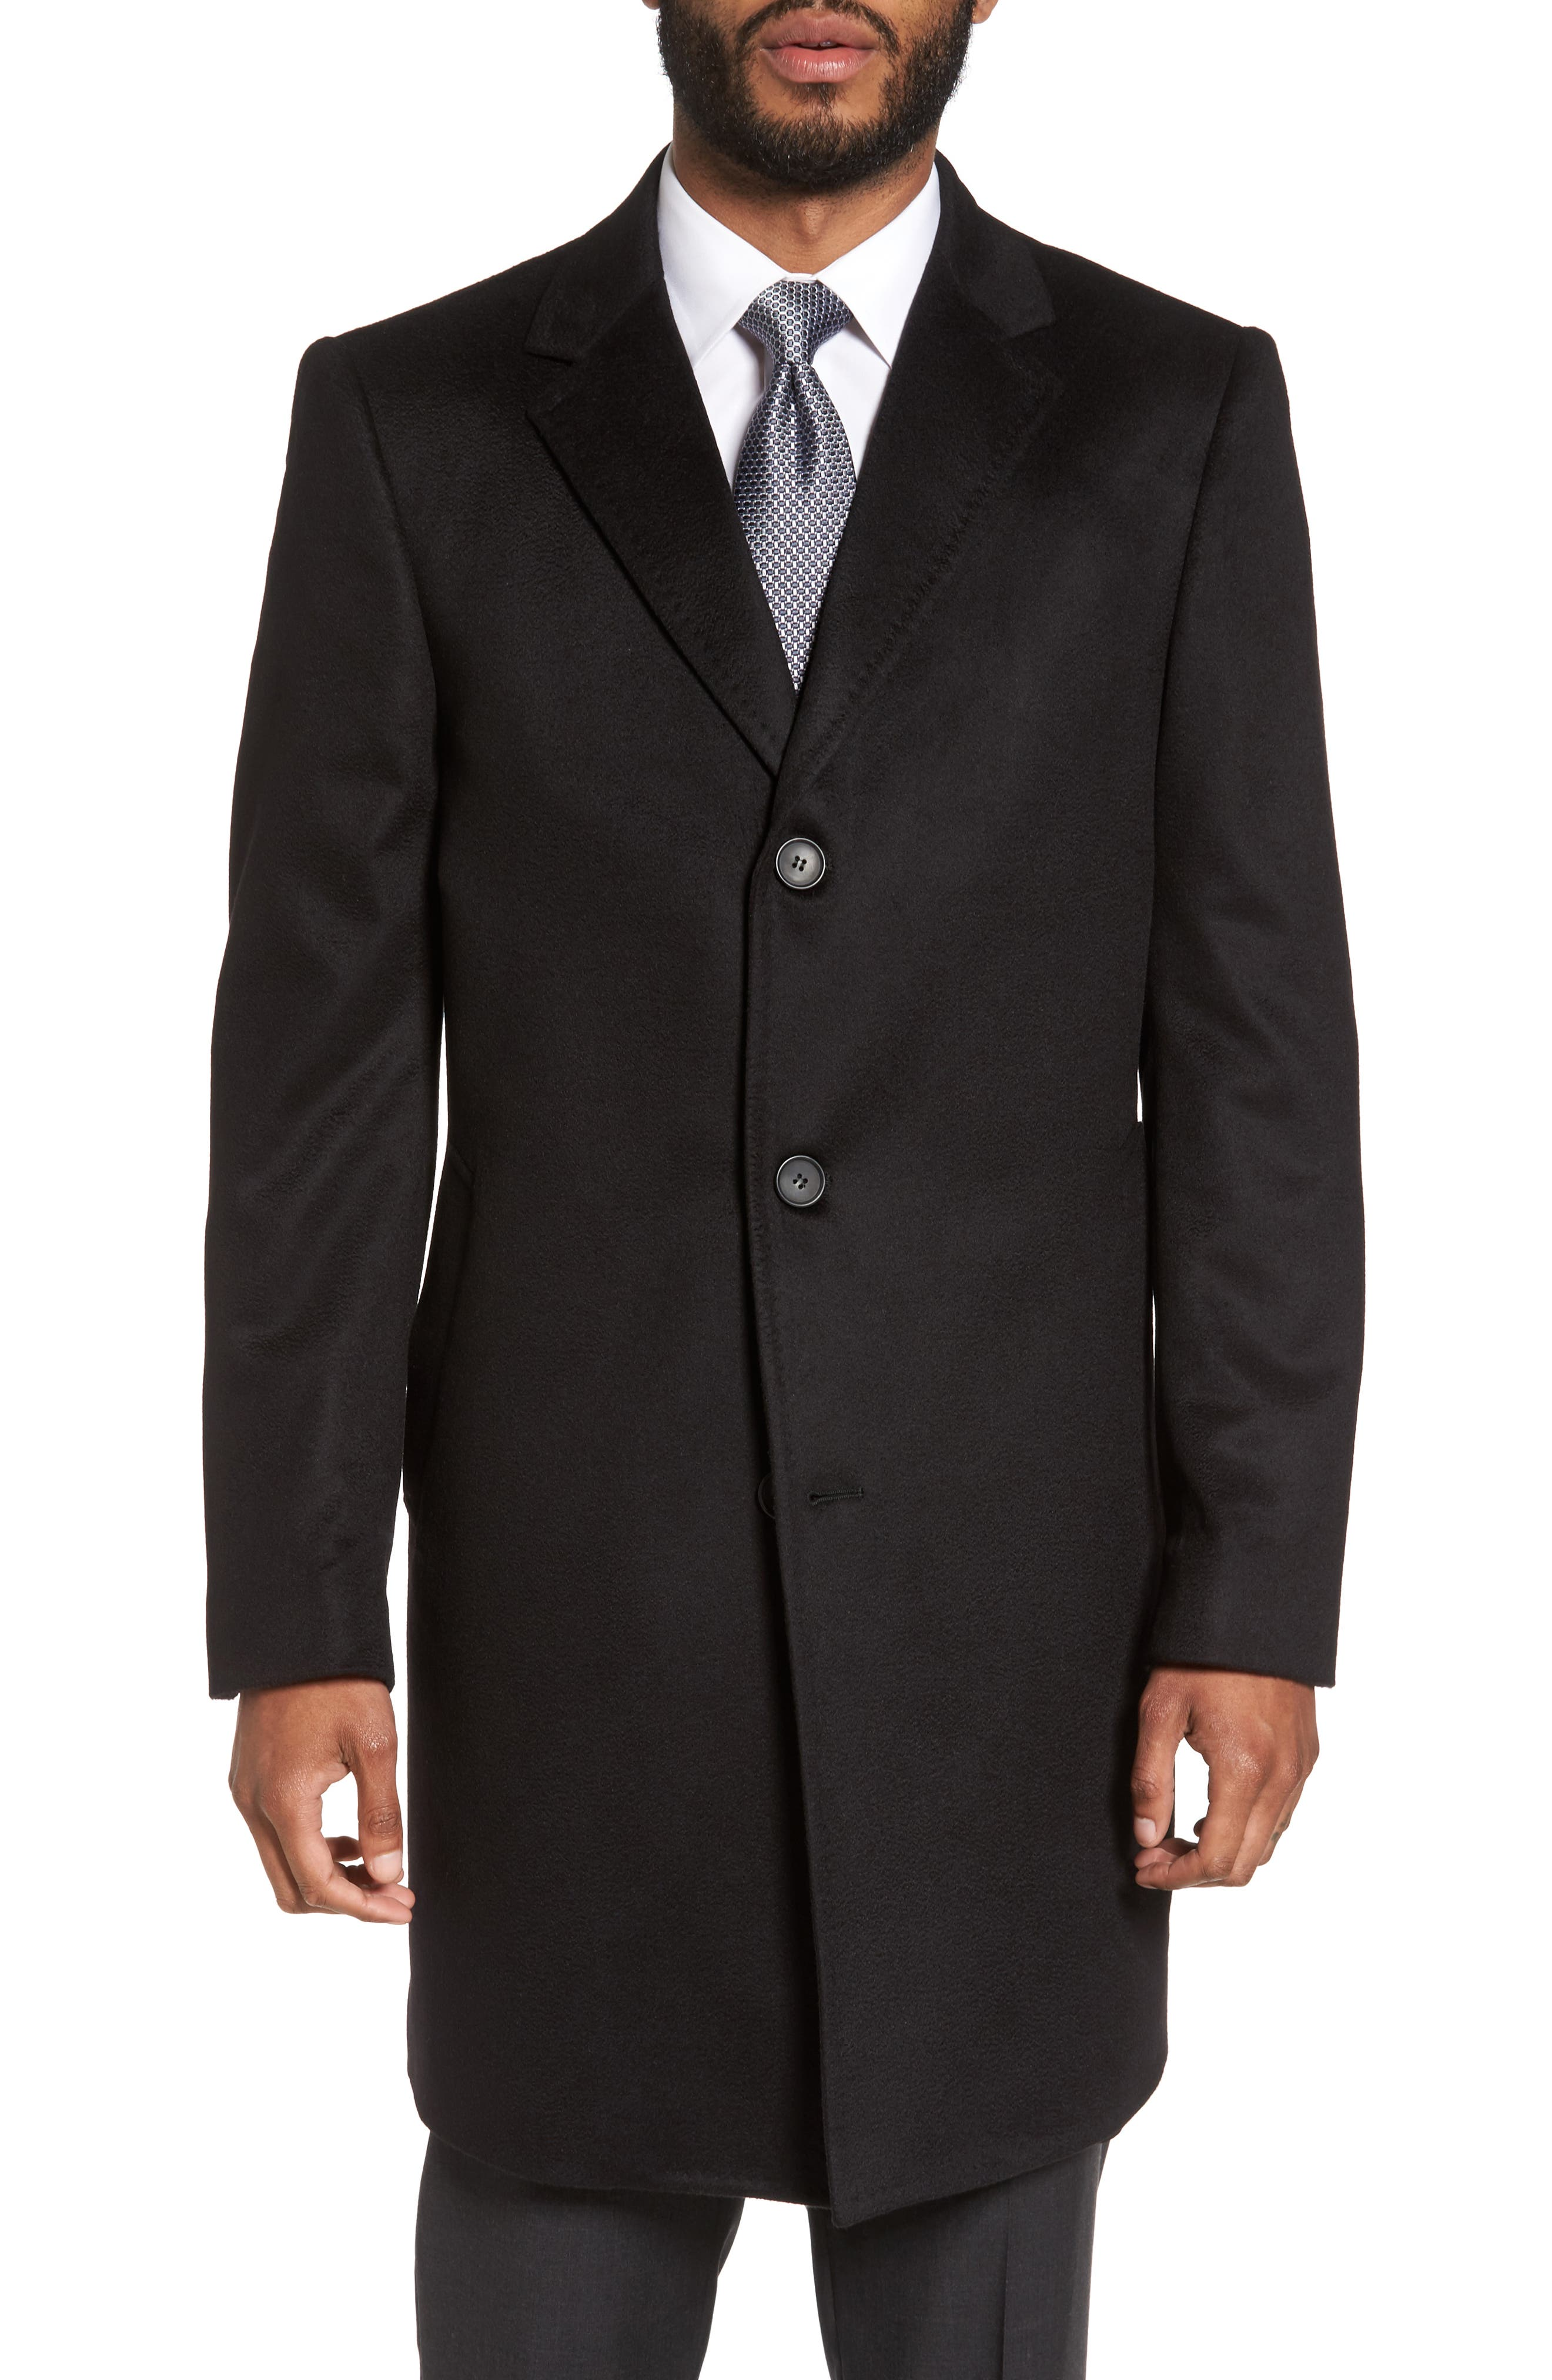 Carter Classic Fit Cashmere Overcoat,                         Main,                         color, 001